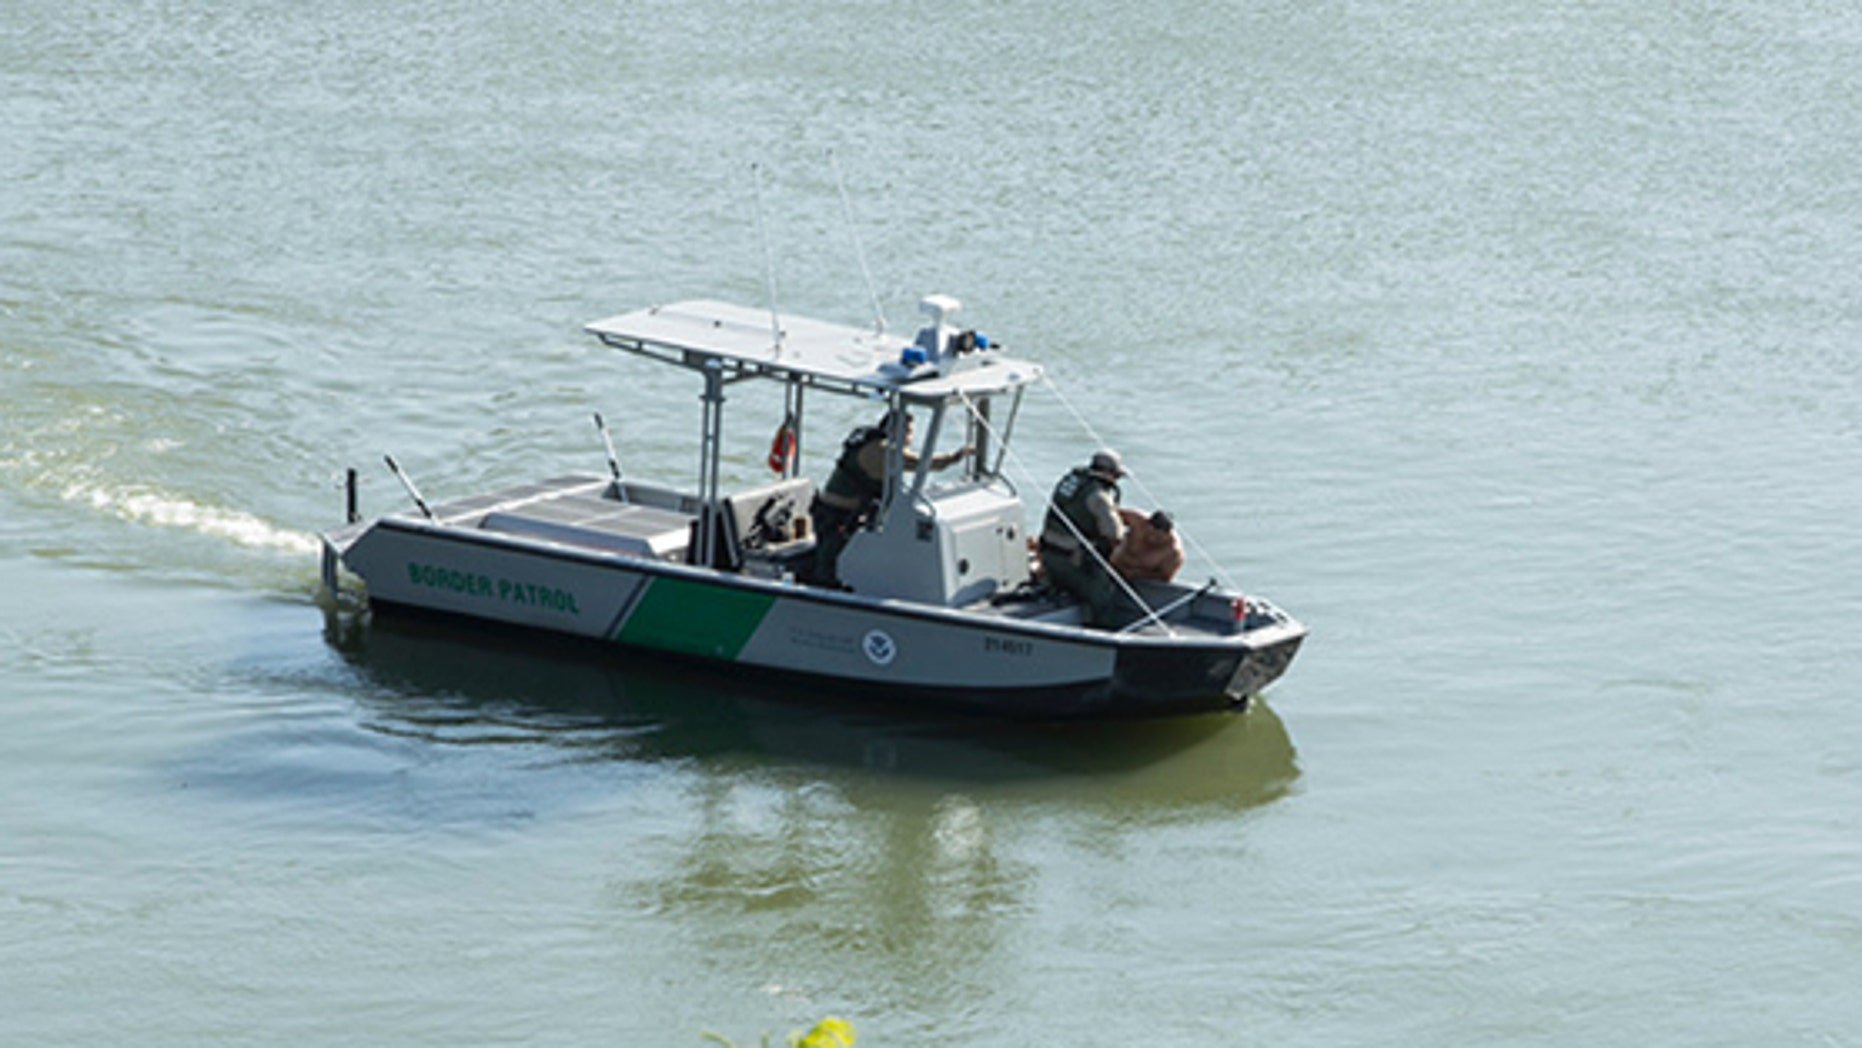 Border Patrol agents pull a man from the Rio Grande into their patrol boat near Roma, Texas Tuesday, April 18, 2017.